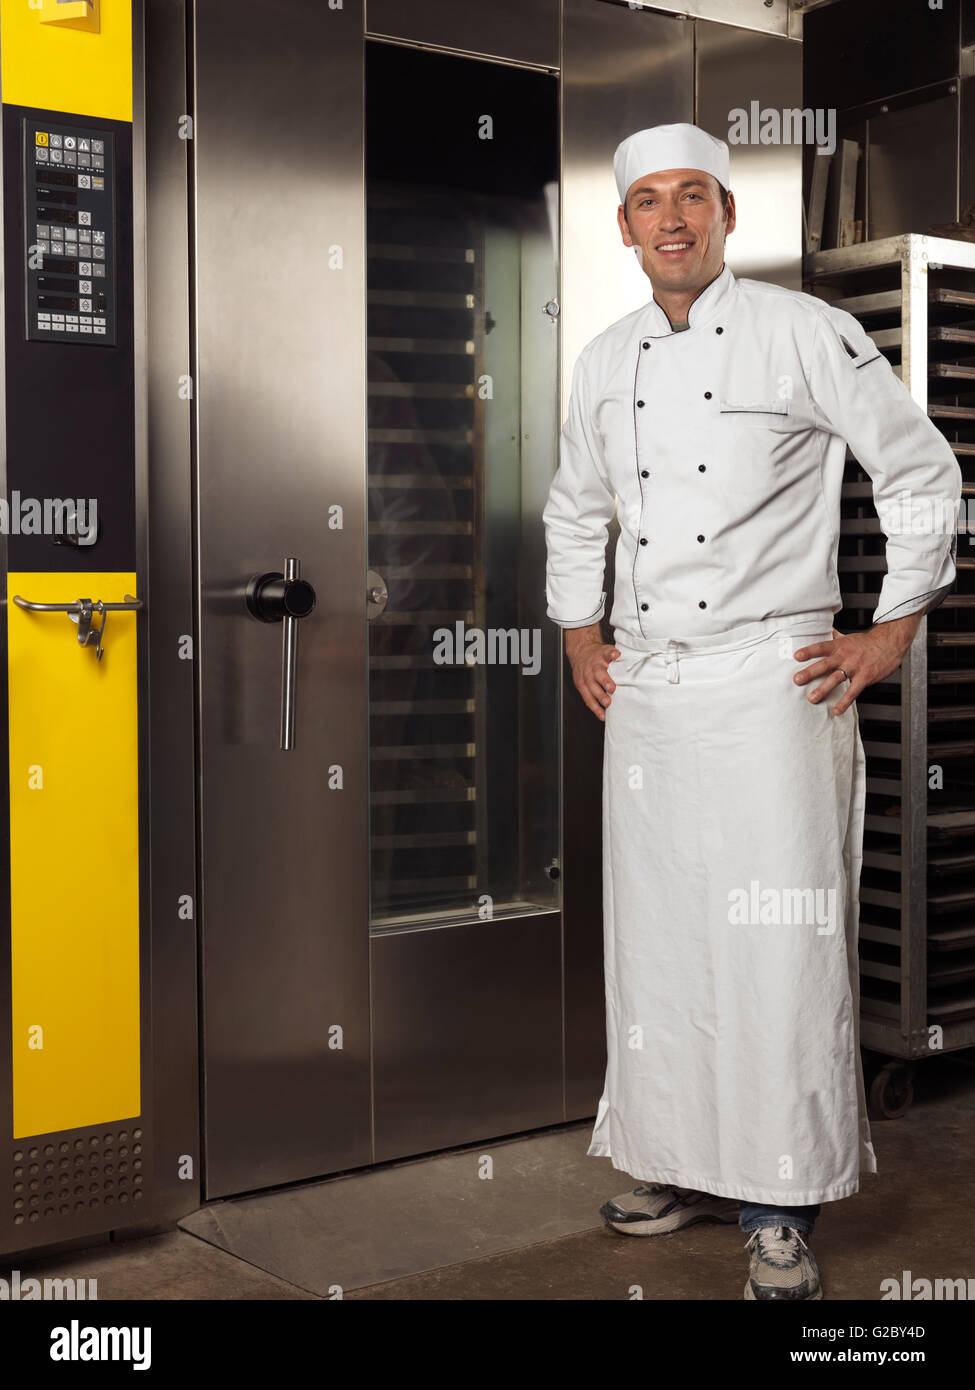 Smiling baker standing at a commercial bakery oven - Stock Image